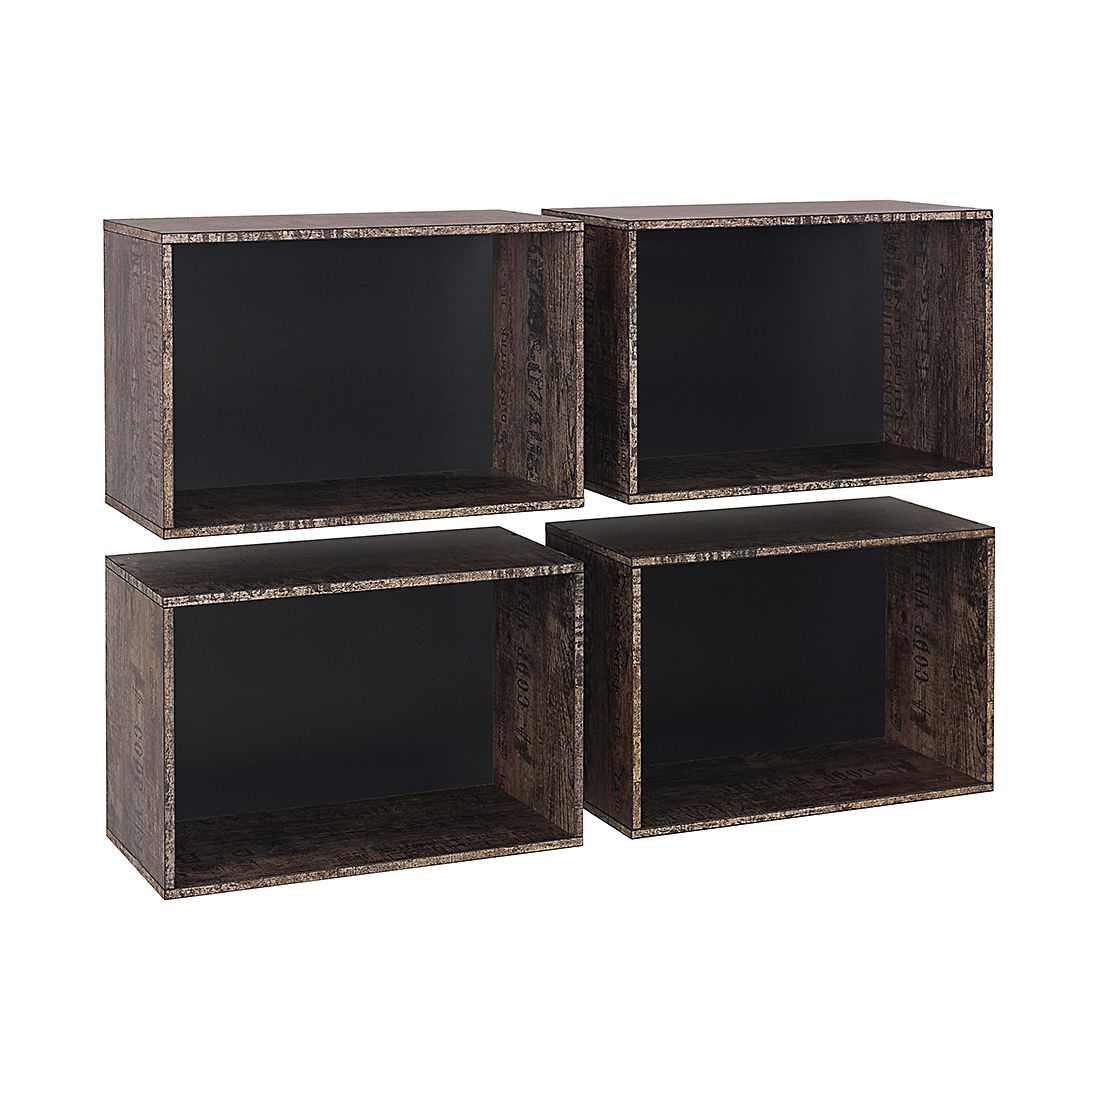 regal dunkelbraun regal dunkelbraun holz with regal. Black Bedroom Furniture Sets. Home Design Ideas